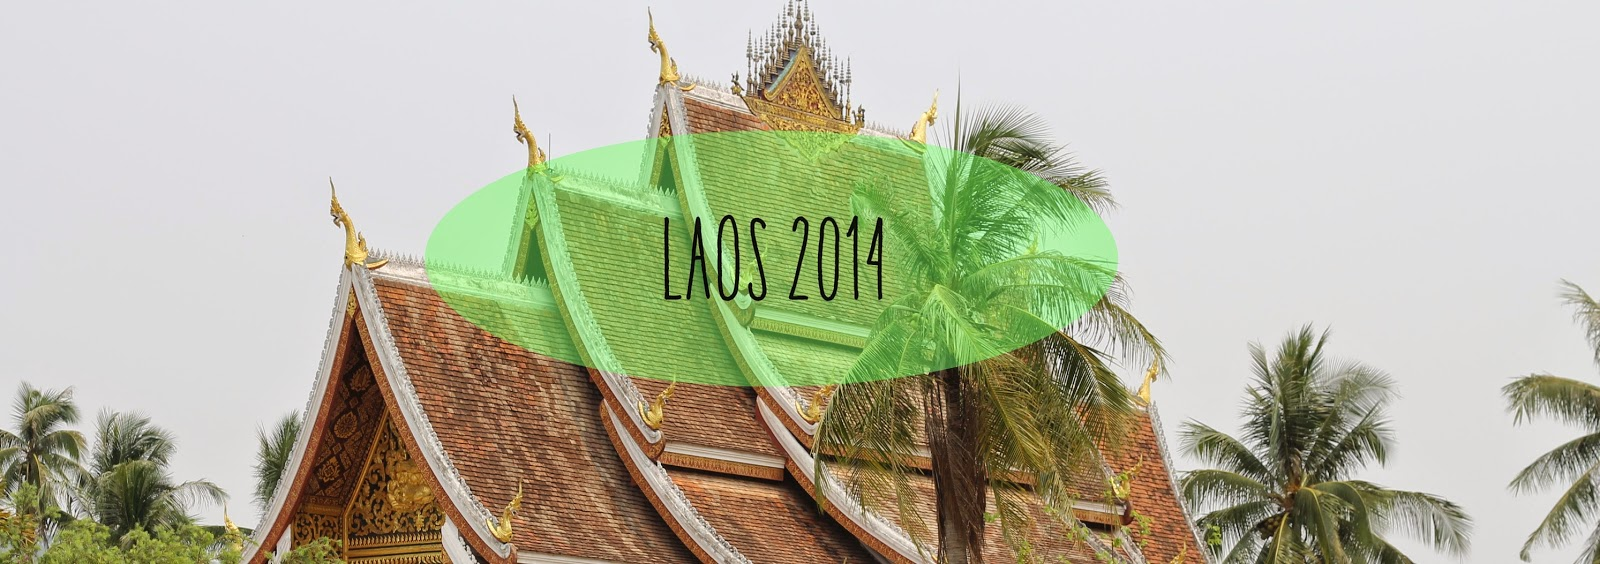 http://charlottenmarotten.blogspot.co.at/2014/05/travel-laos-impressionen-i.html